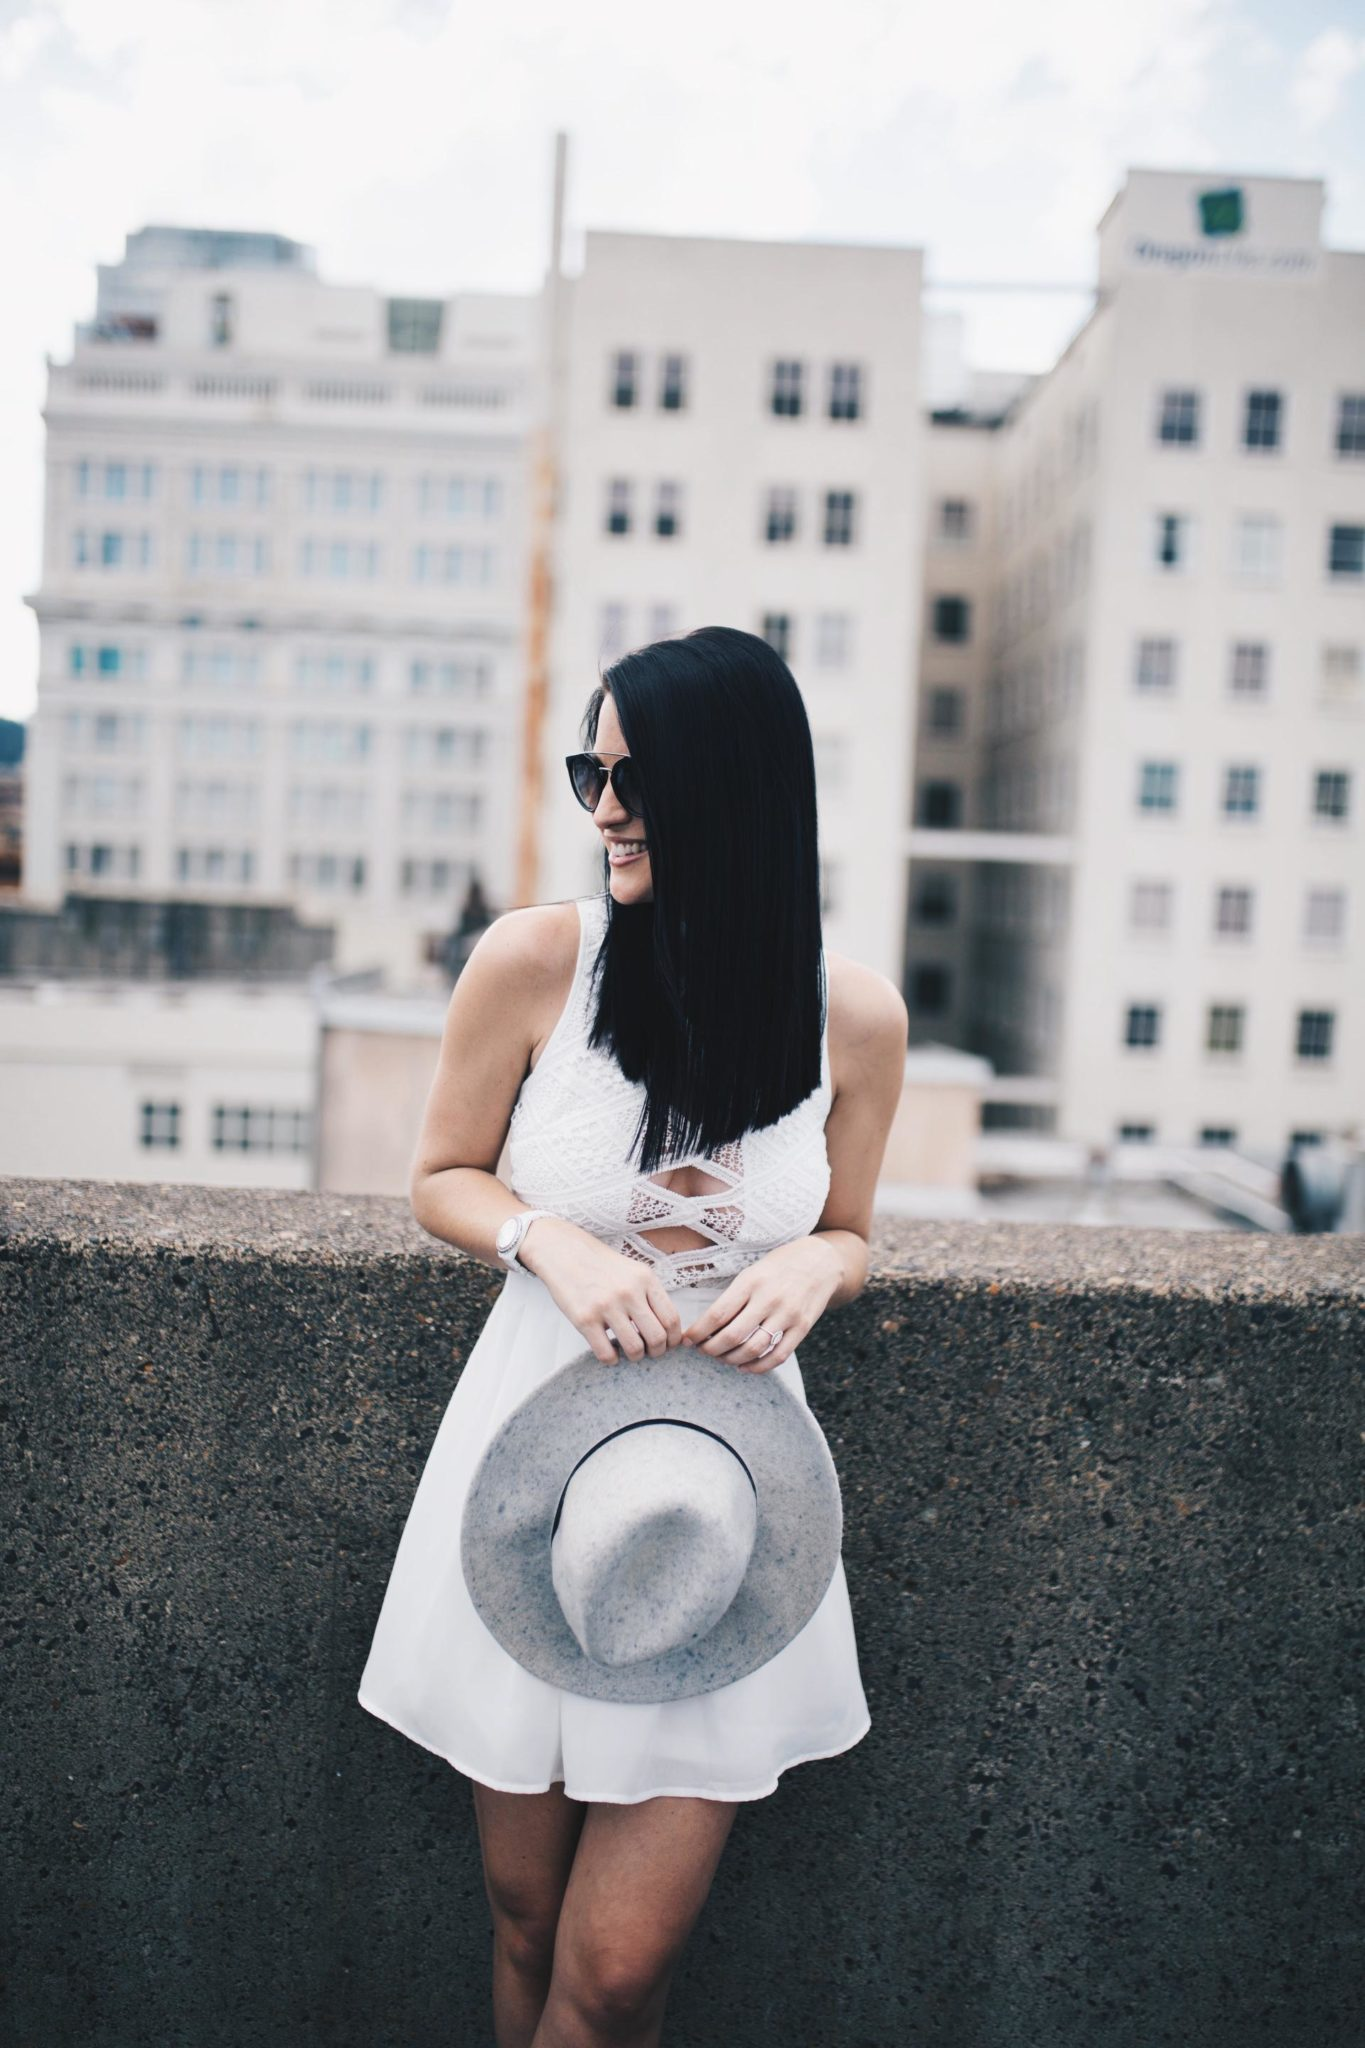 White Cutout Lace Dress | summer fashion tips | summer outfit ideas | summer style tips | what to wear for summer | warm weather fashion | fashion for summer | style tips for summer | outfit ideas for summer || Dressed to Kill